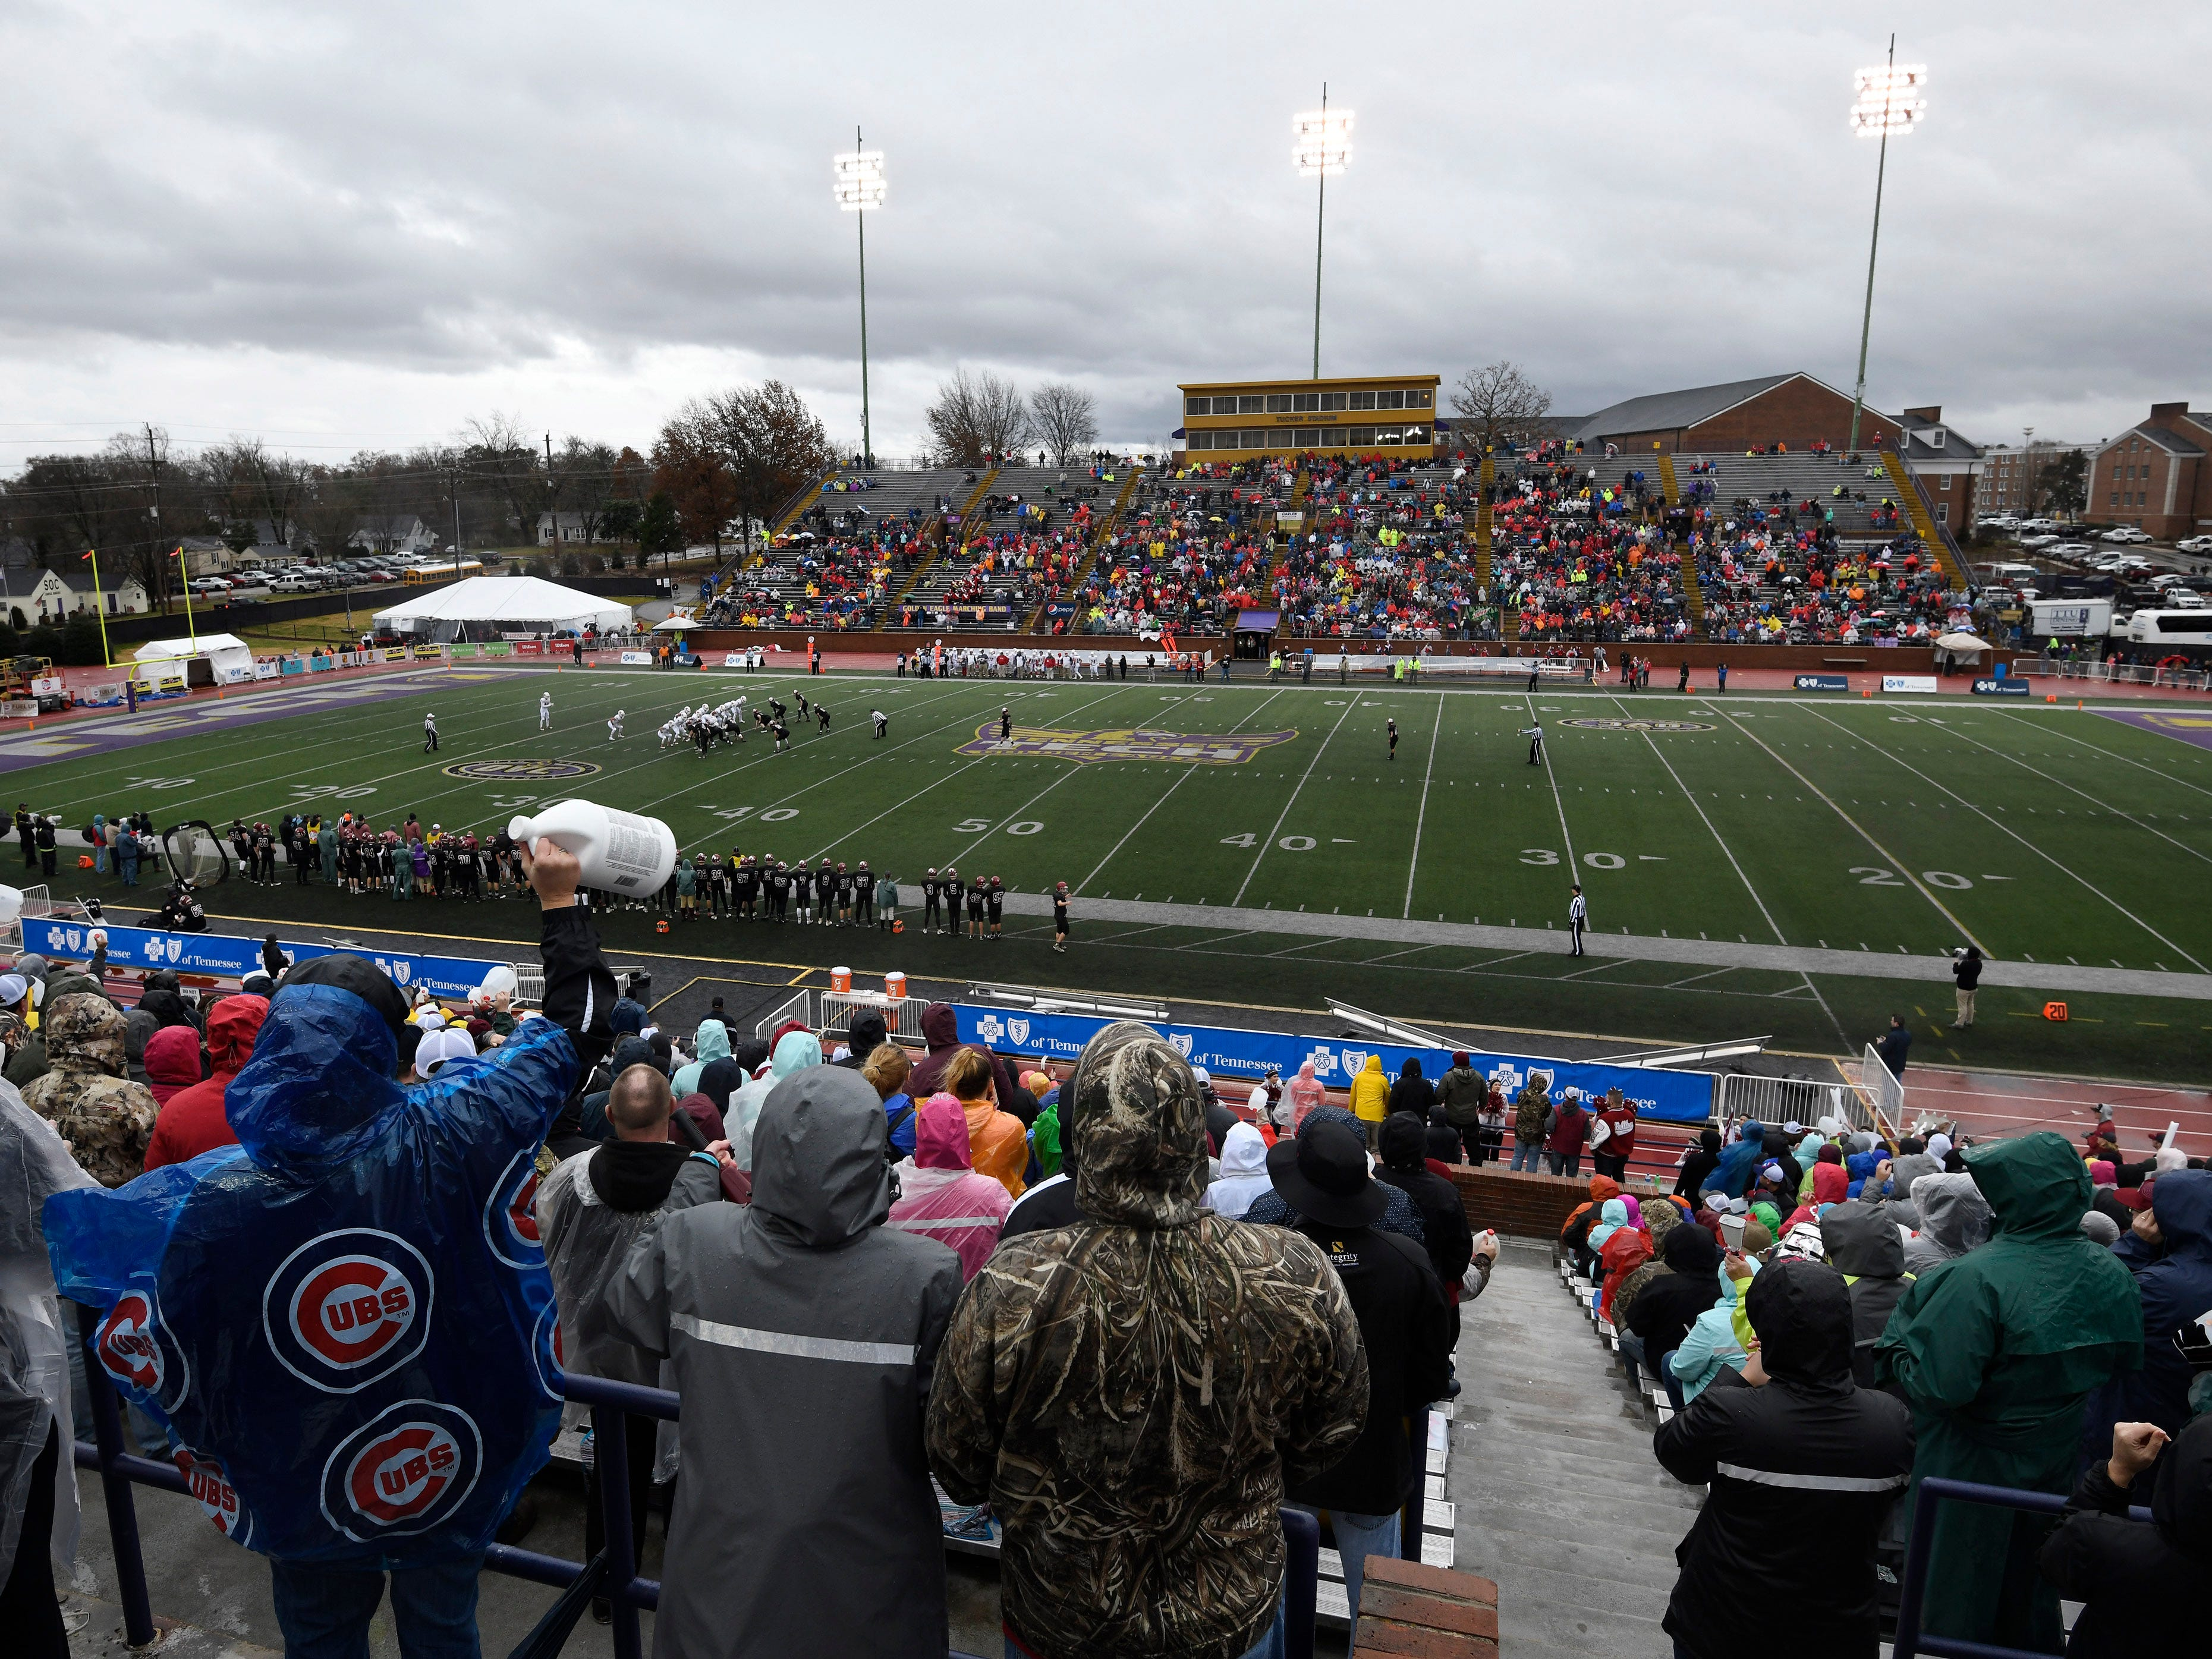 Fans cheer for the Cornersville and Whitwell at the Class I-A BlueCross Bowl state championship at Tennessee Tech's Tucker Stadium in Cookeville, Tenn., on Saturday, Dec. 1, 2018.